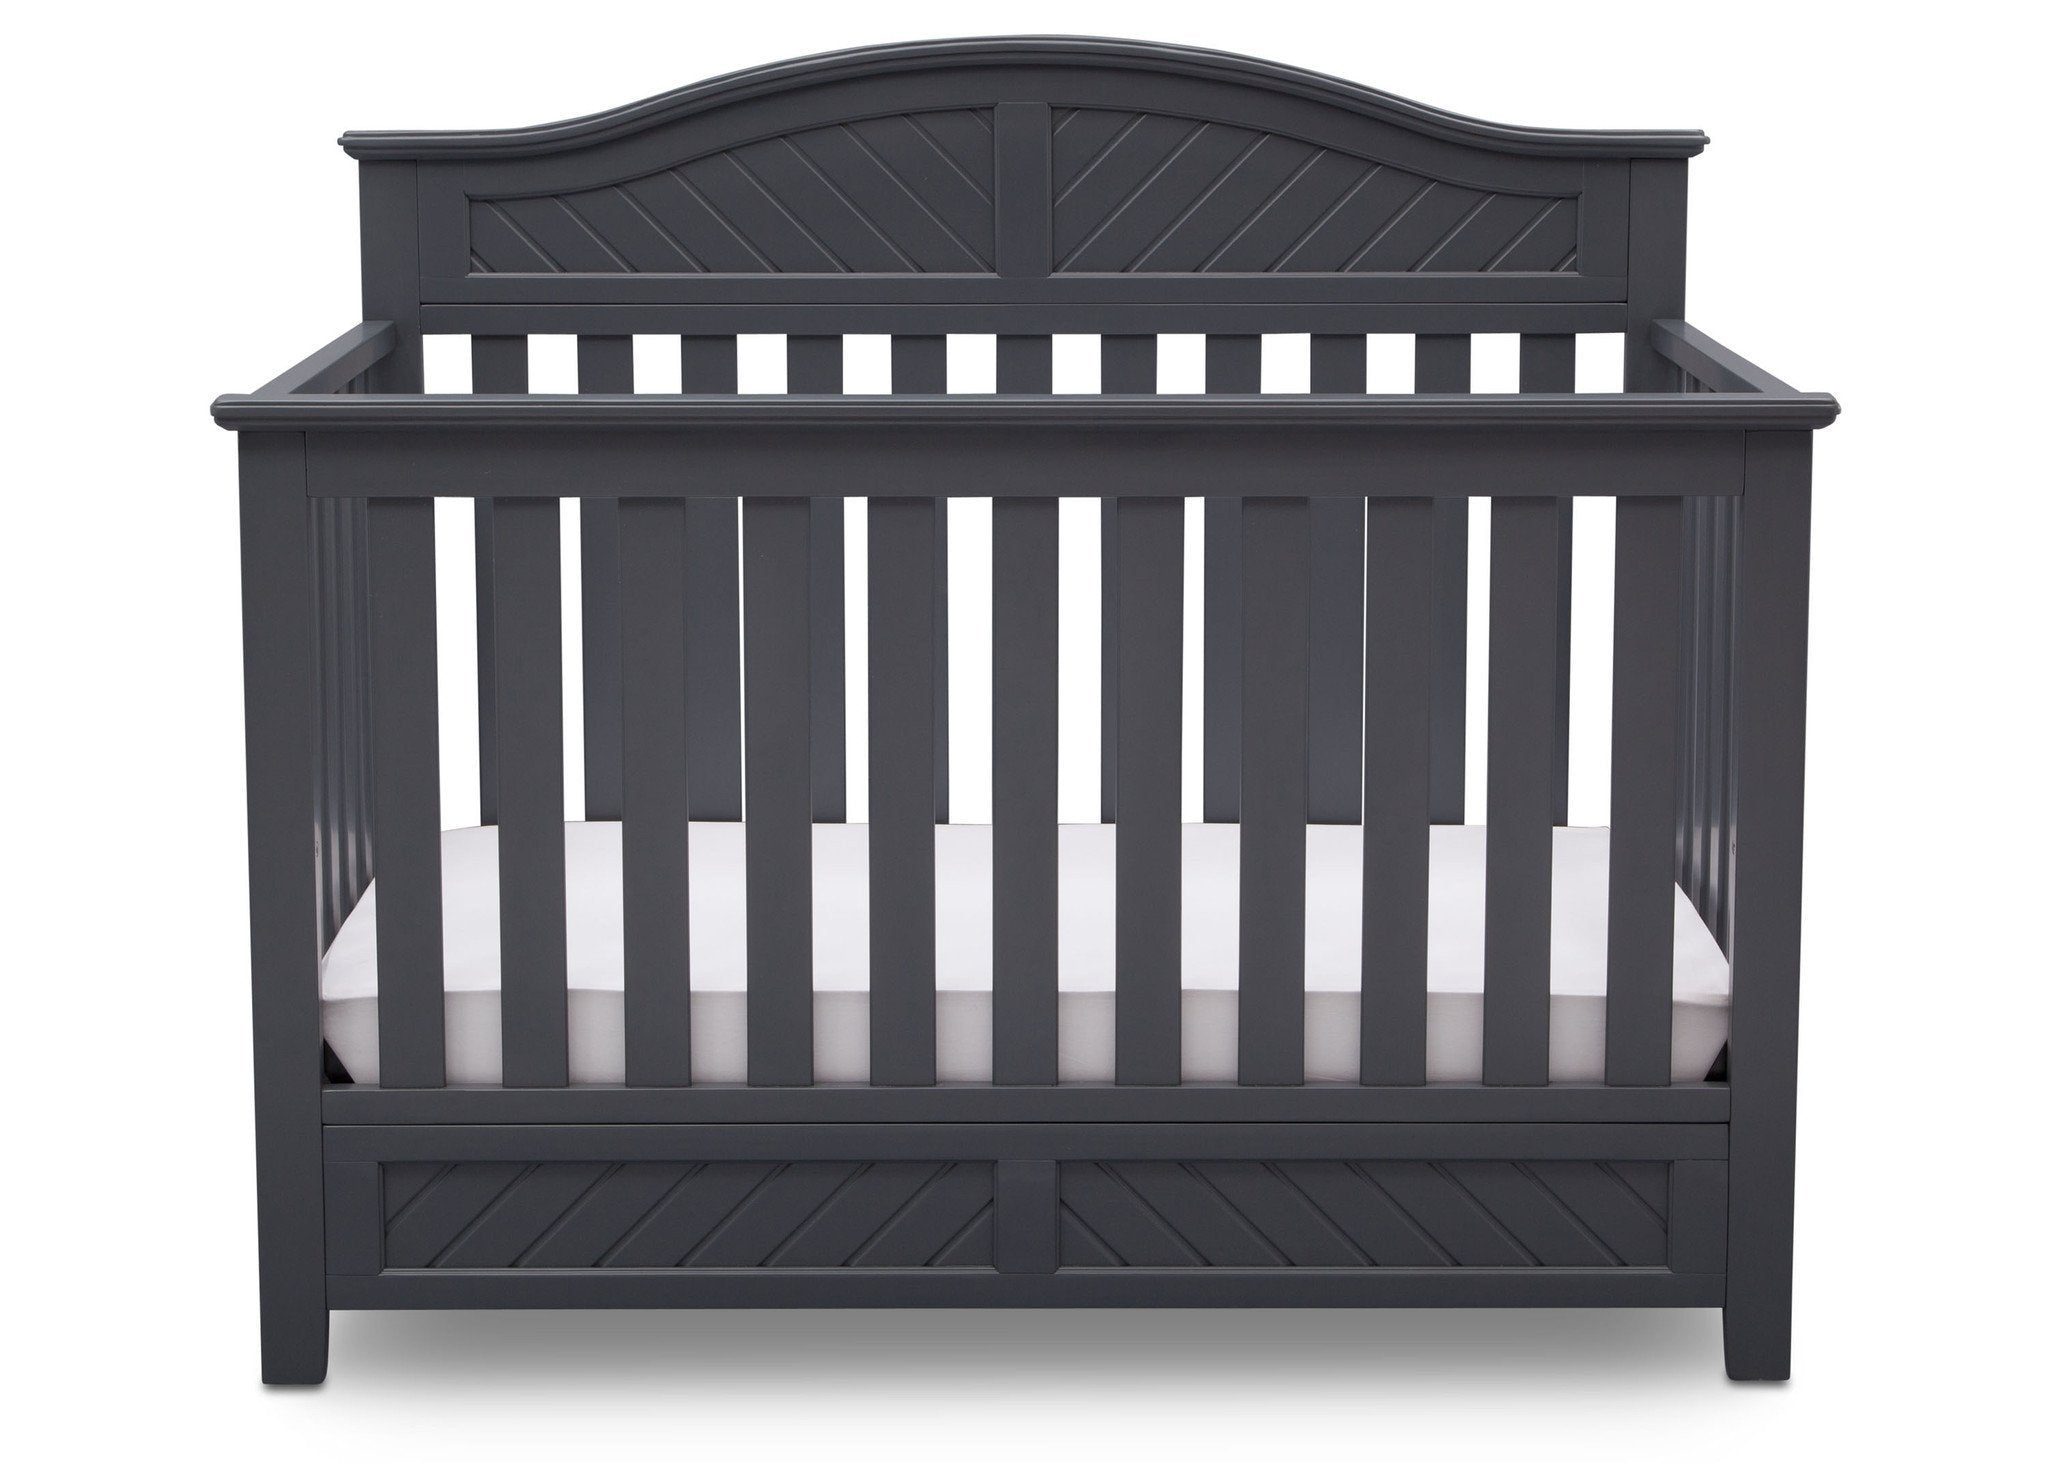 Delta Children Charcoal (029) Bennington Elite Curved 4-in-1 Crib Front View c2c